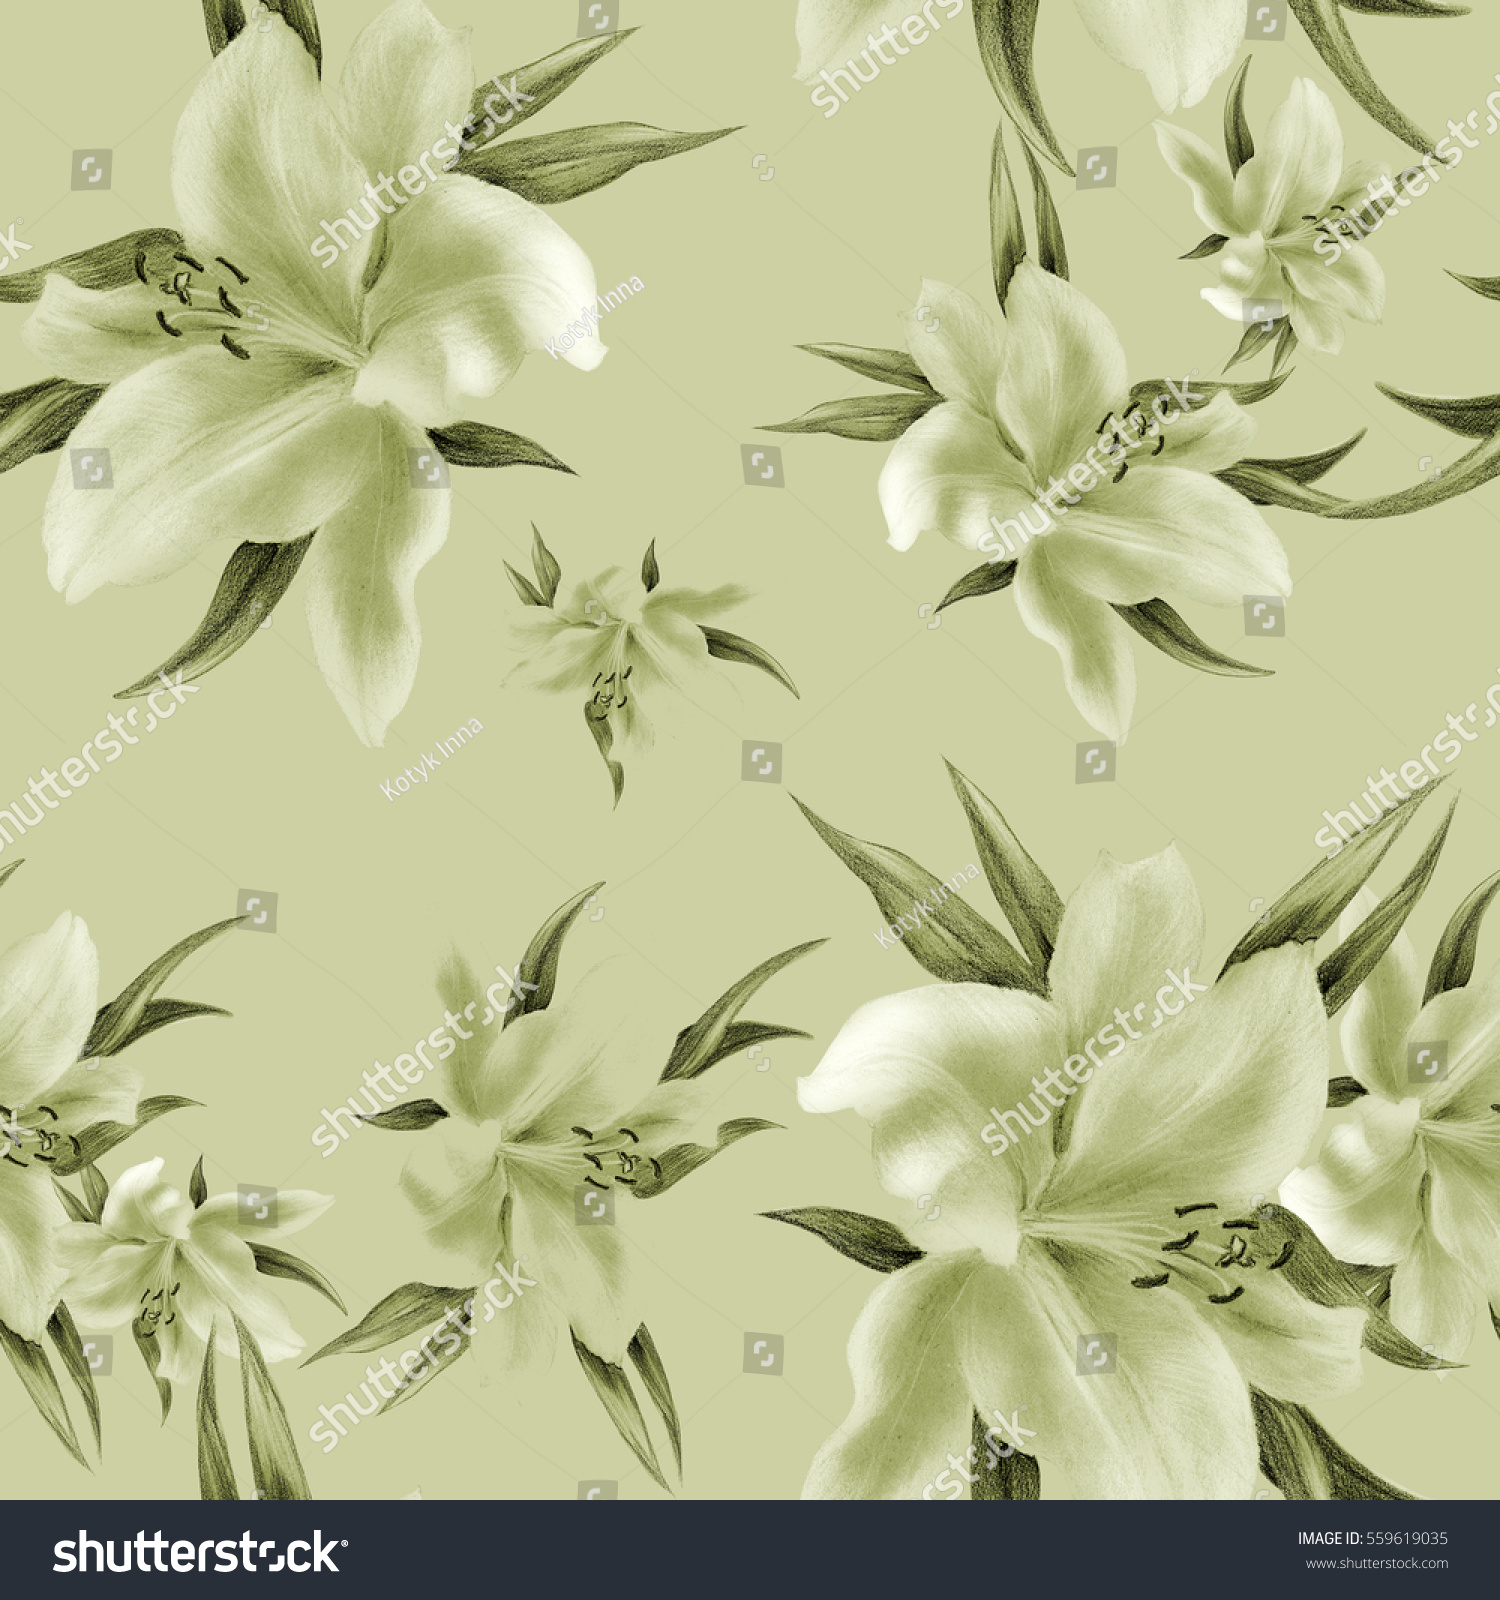 Lily flowers wallpaper drawing pastel seamless stock illustration lily flowers wallpaper drawing pastel seamless pattern wallpaper use printed materials izmirmasajfo